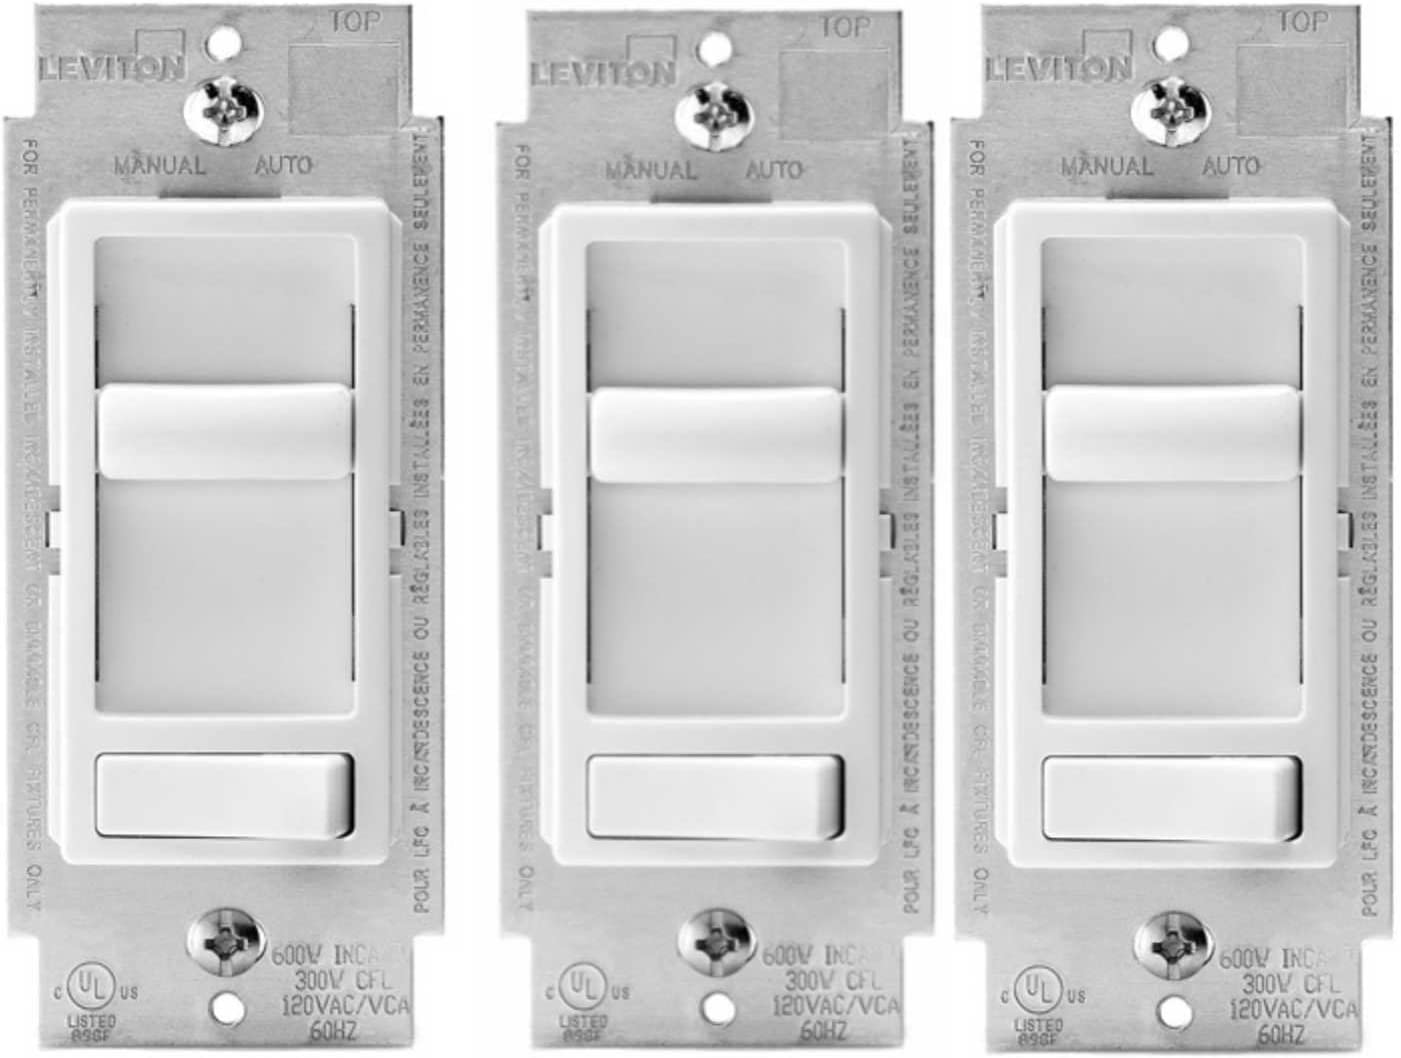 Leviton 6674-P0W SureSlide Universal 150-Watt LED and CFL/600-Watt Incandescent Dimmer, White (3 Pack)